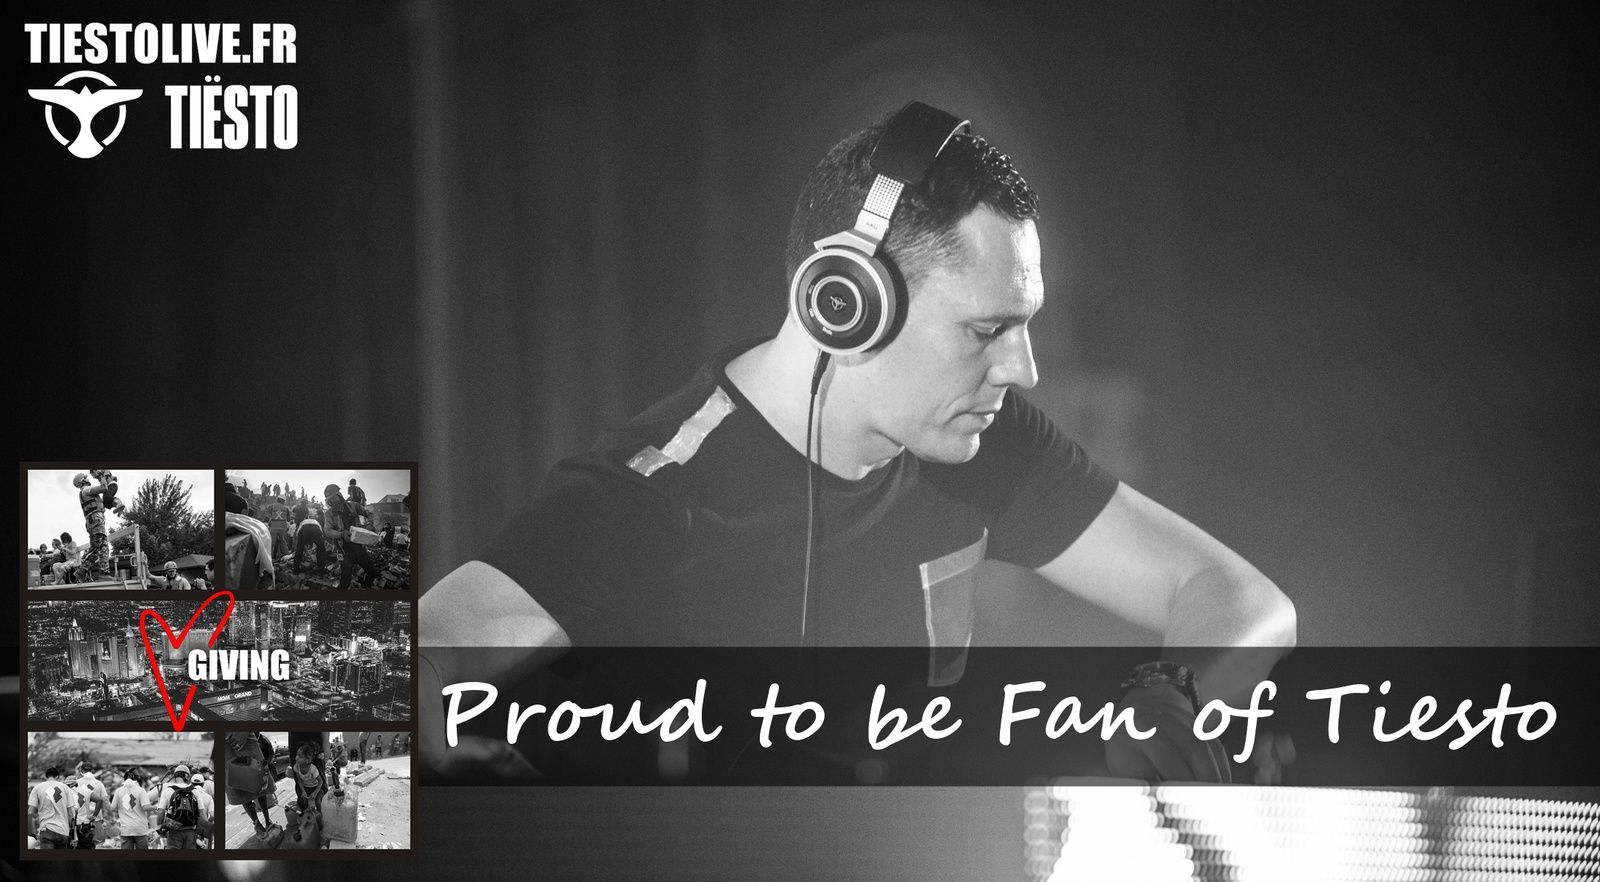 Tiësto - your donations are important !